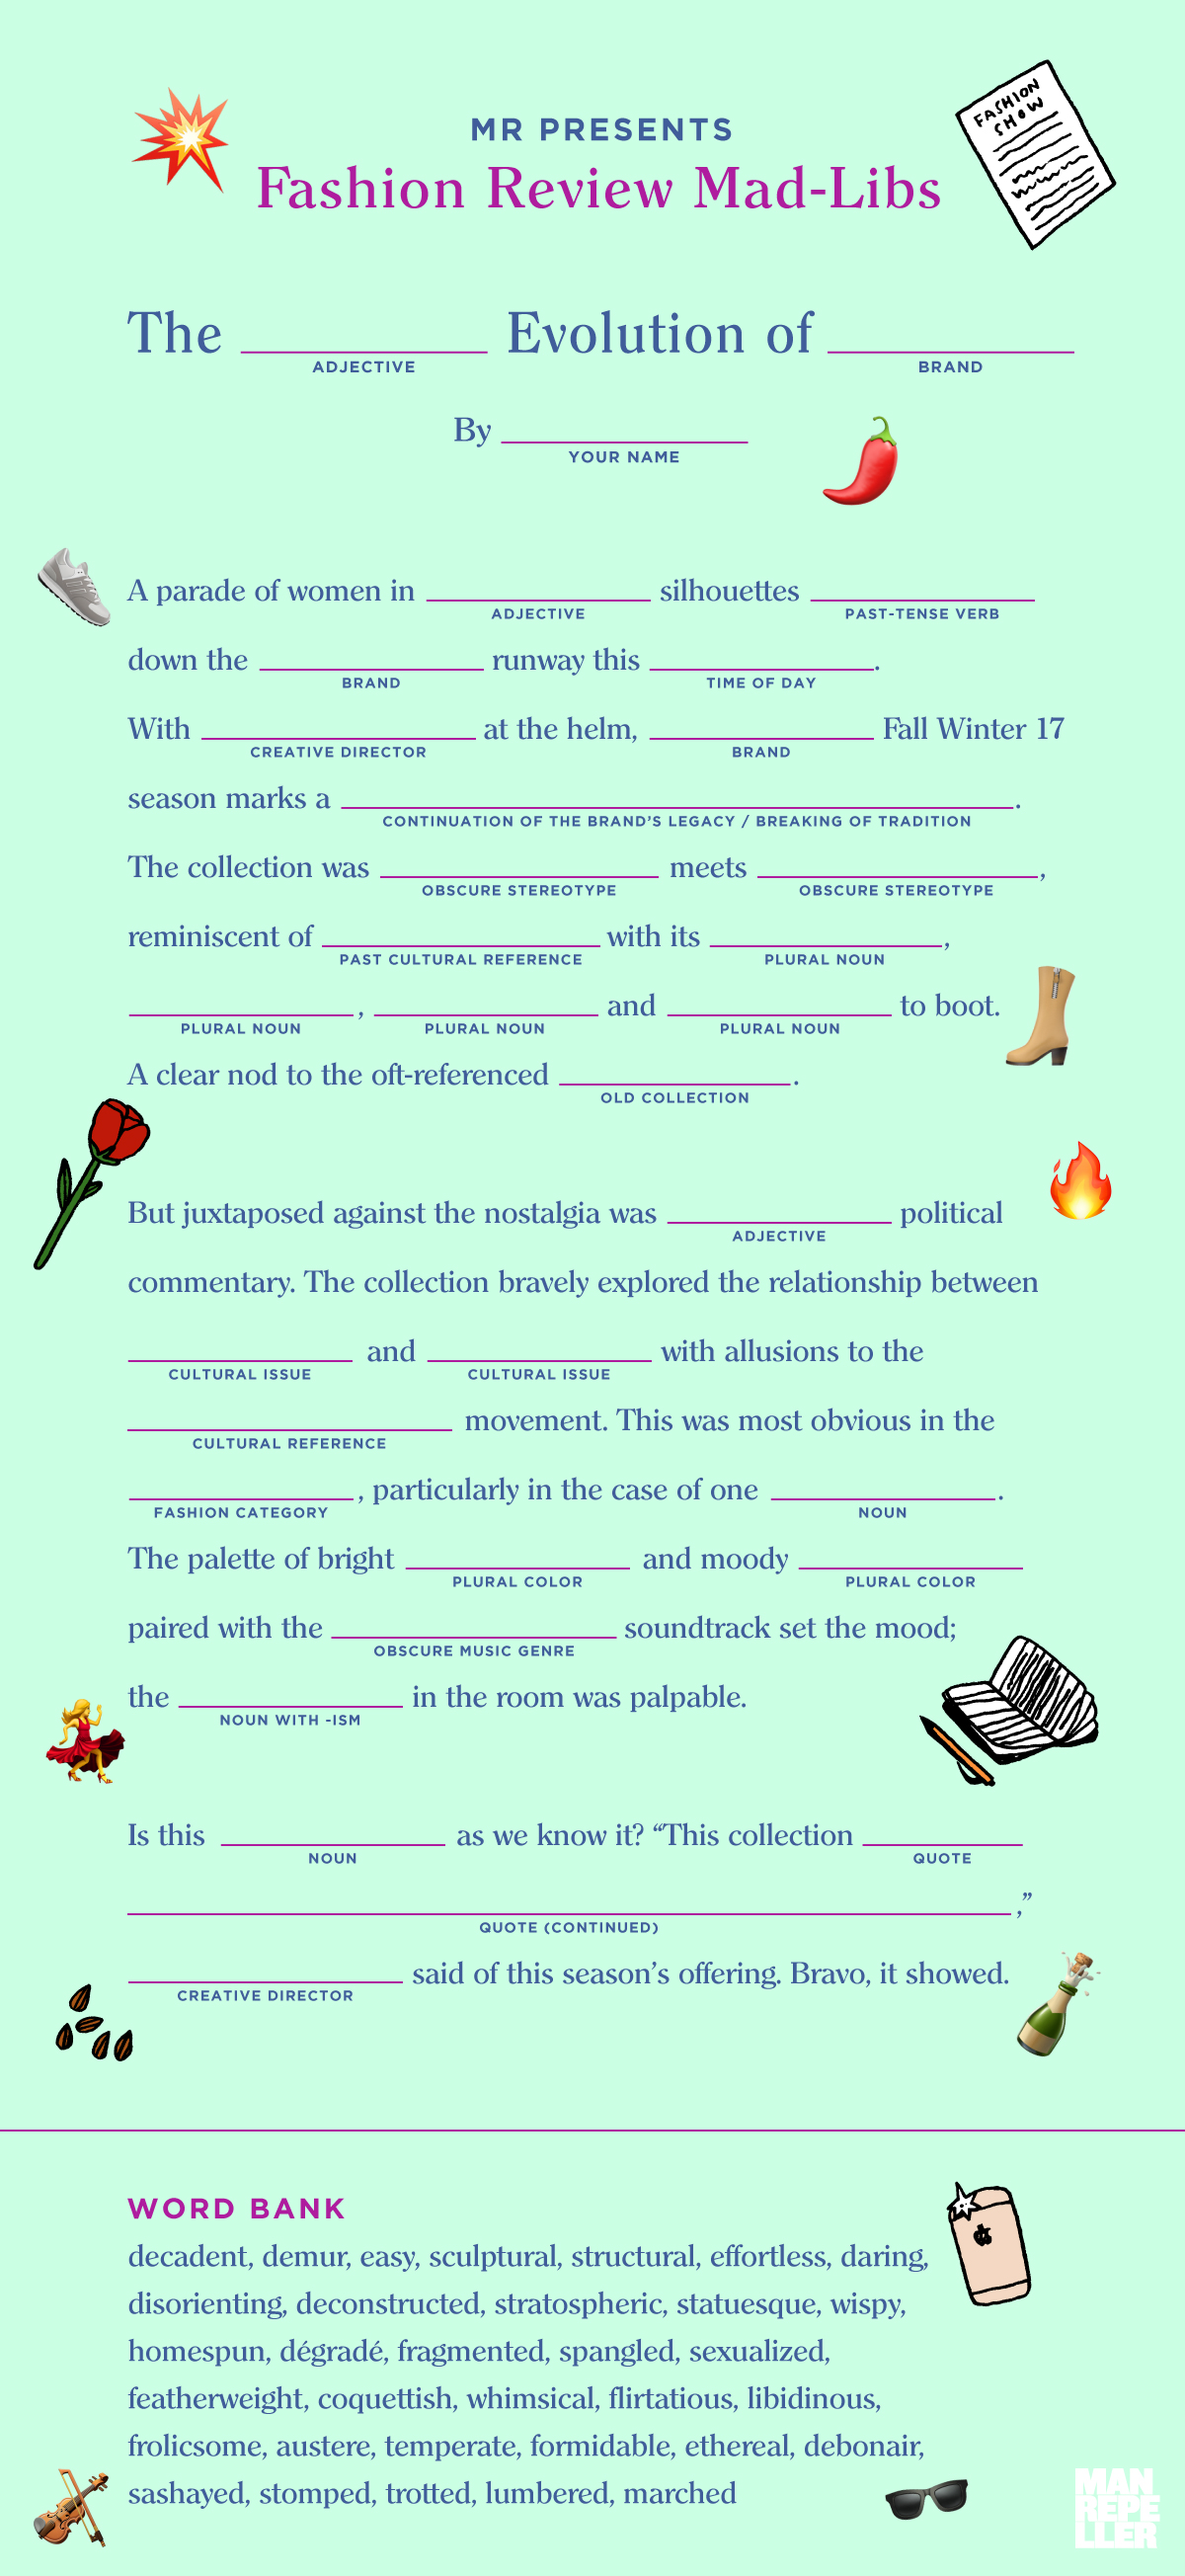 MR-Mad-Libs--How-to-Write-a-Fashion-Review-Man-Repeller_Insert Image